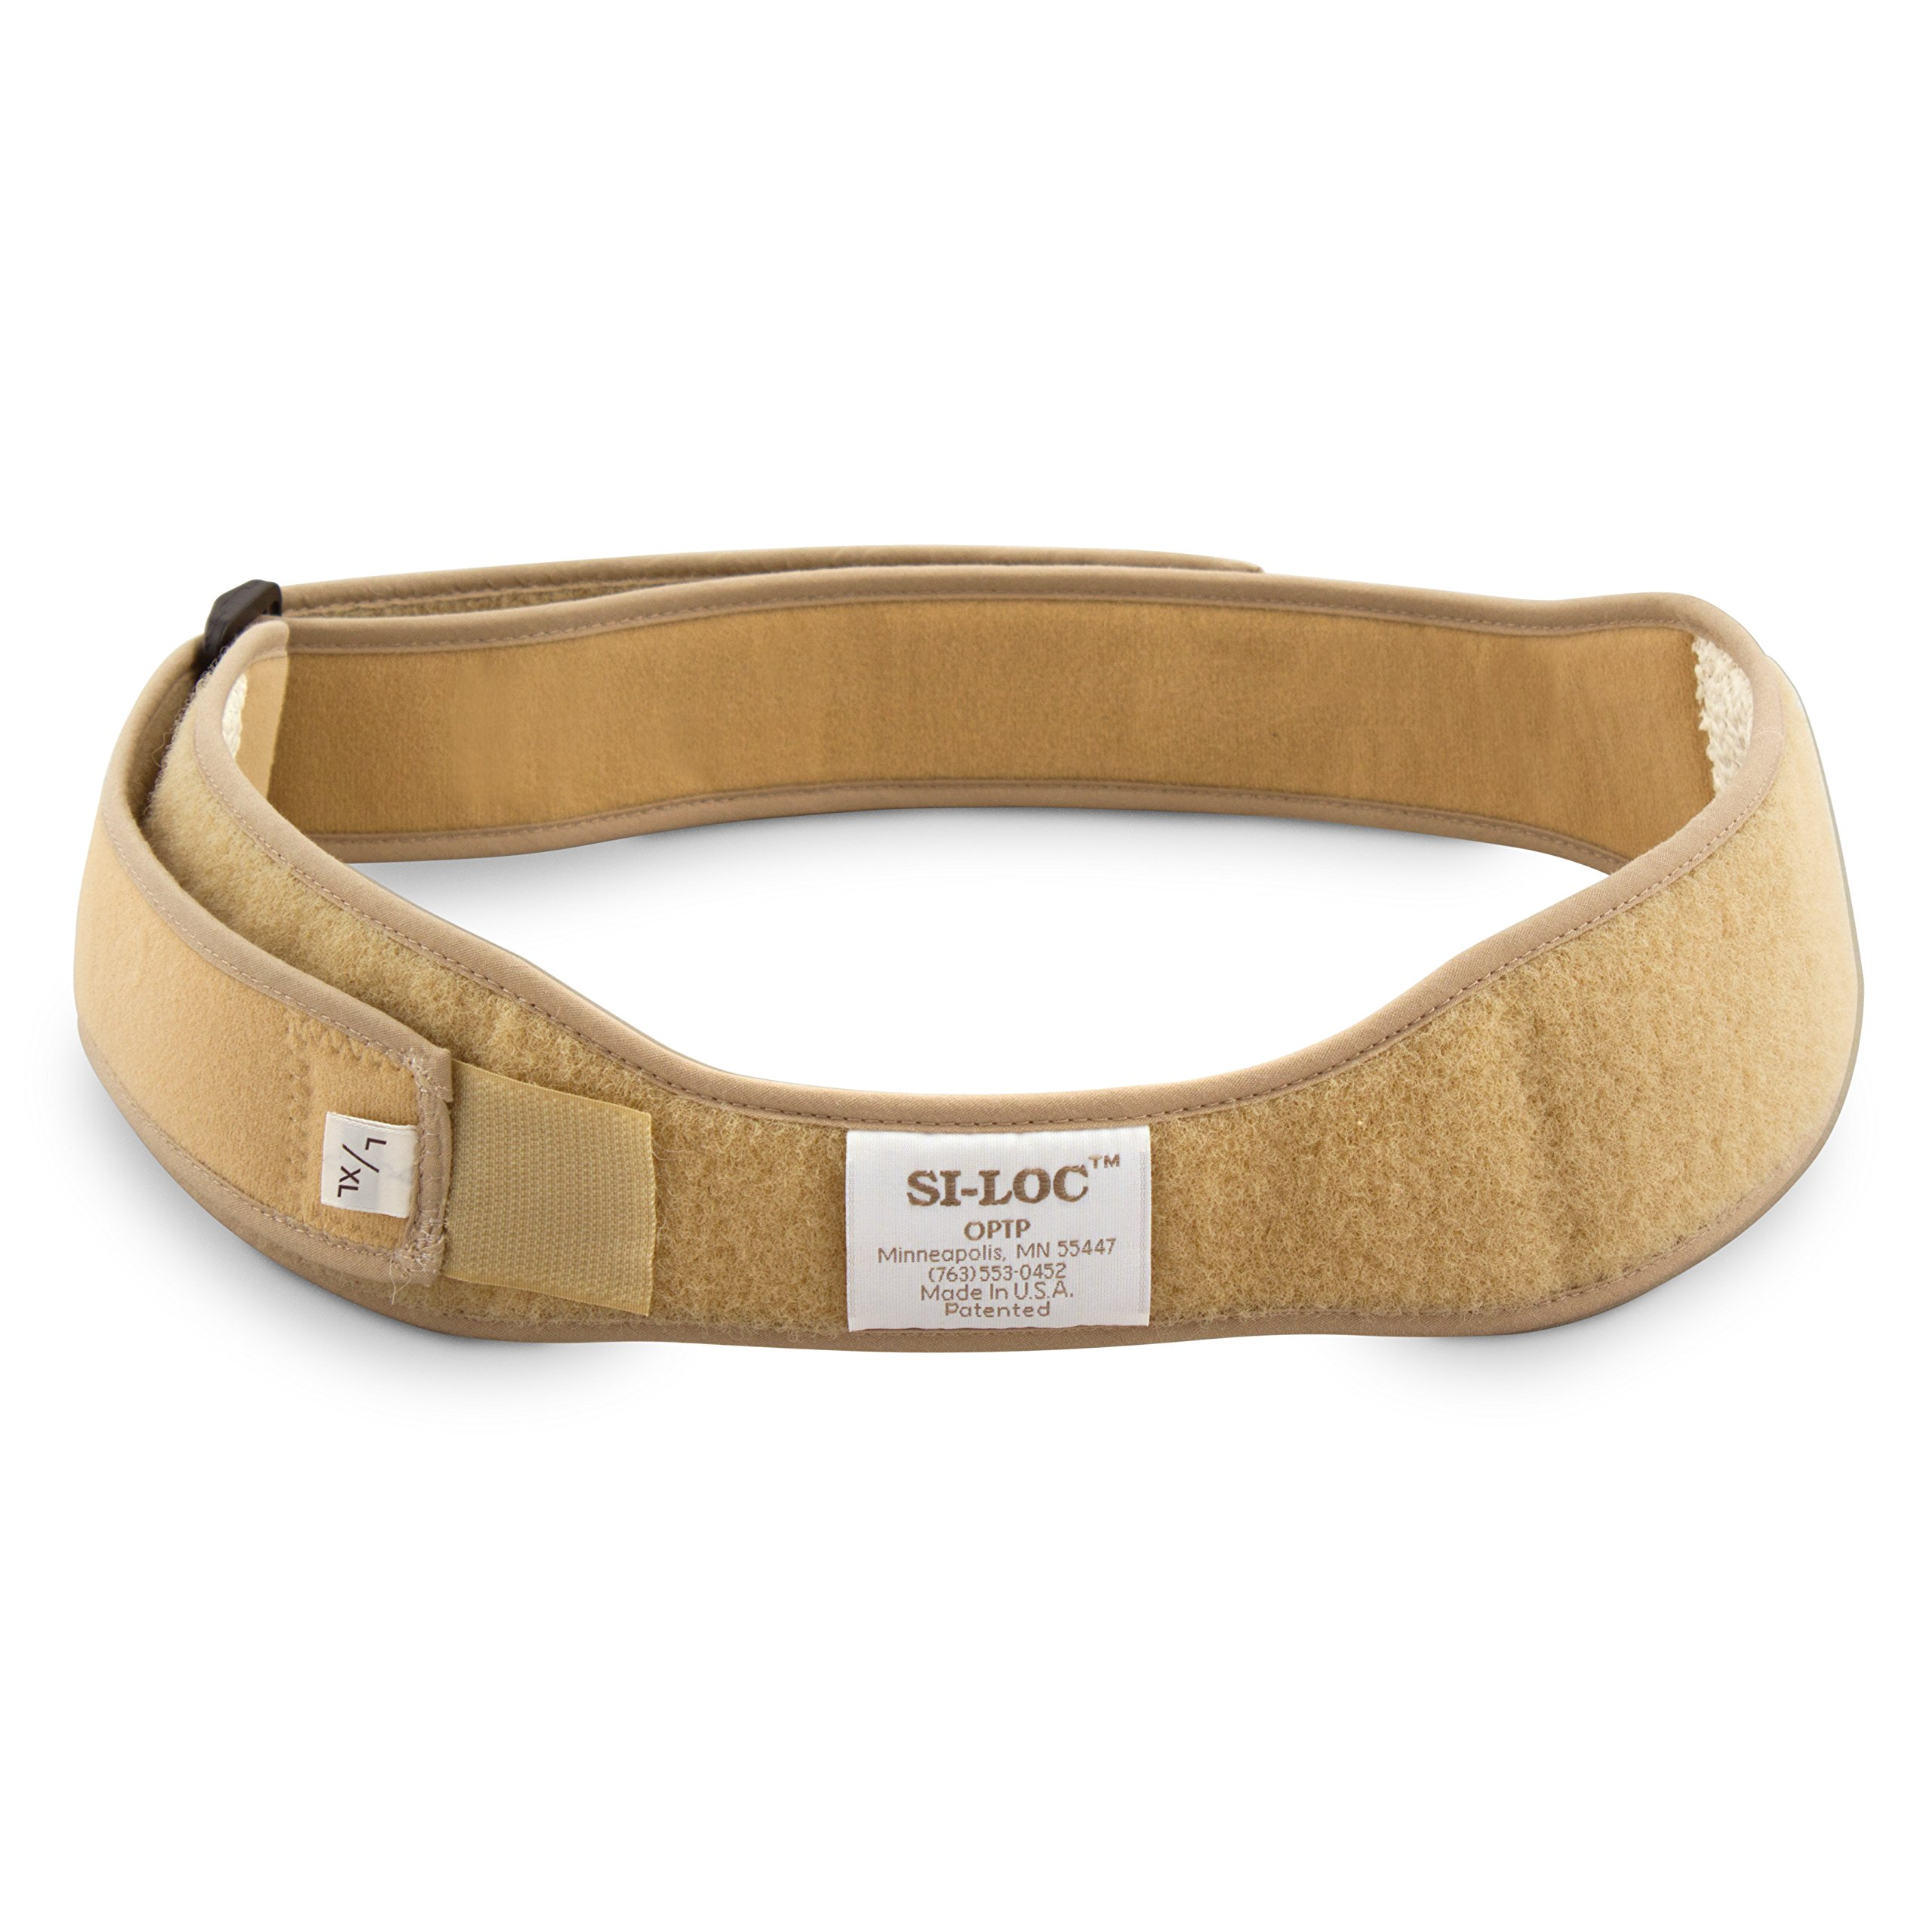 OPTP SI-LOC Support Belt - Large/Extra Large (671) - Low Back and Pelvic Pain Relief